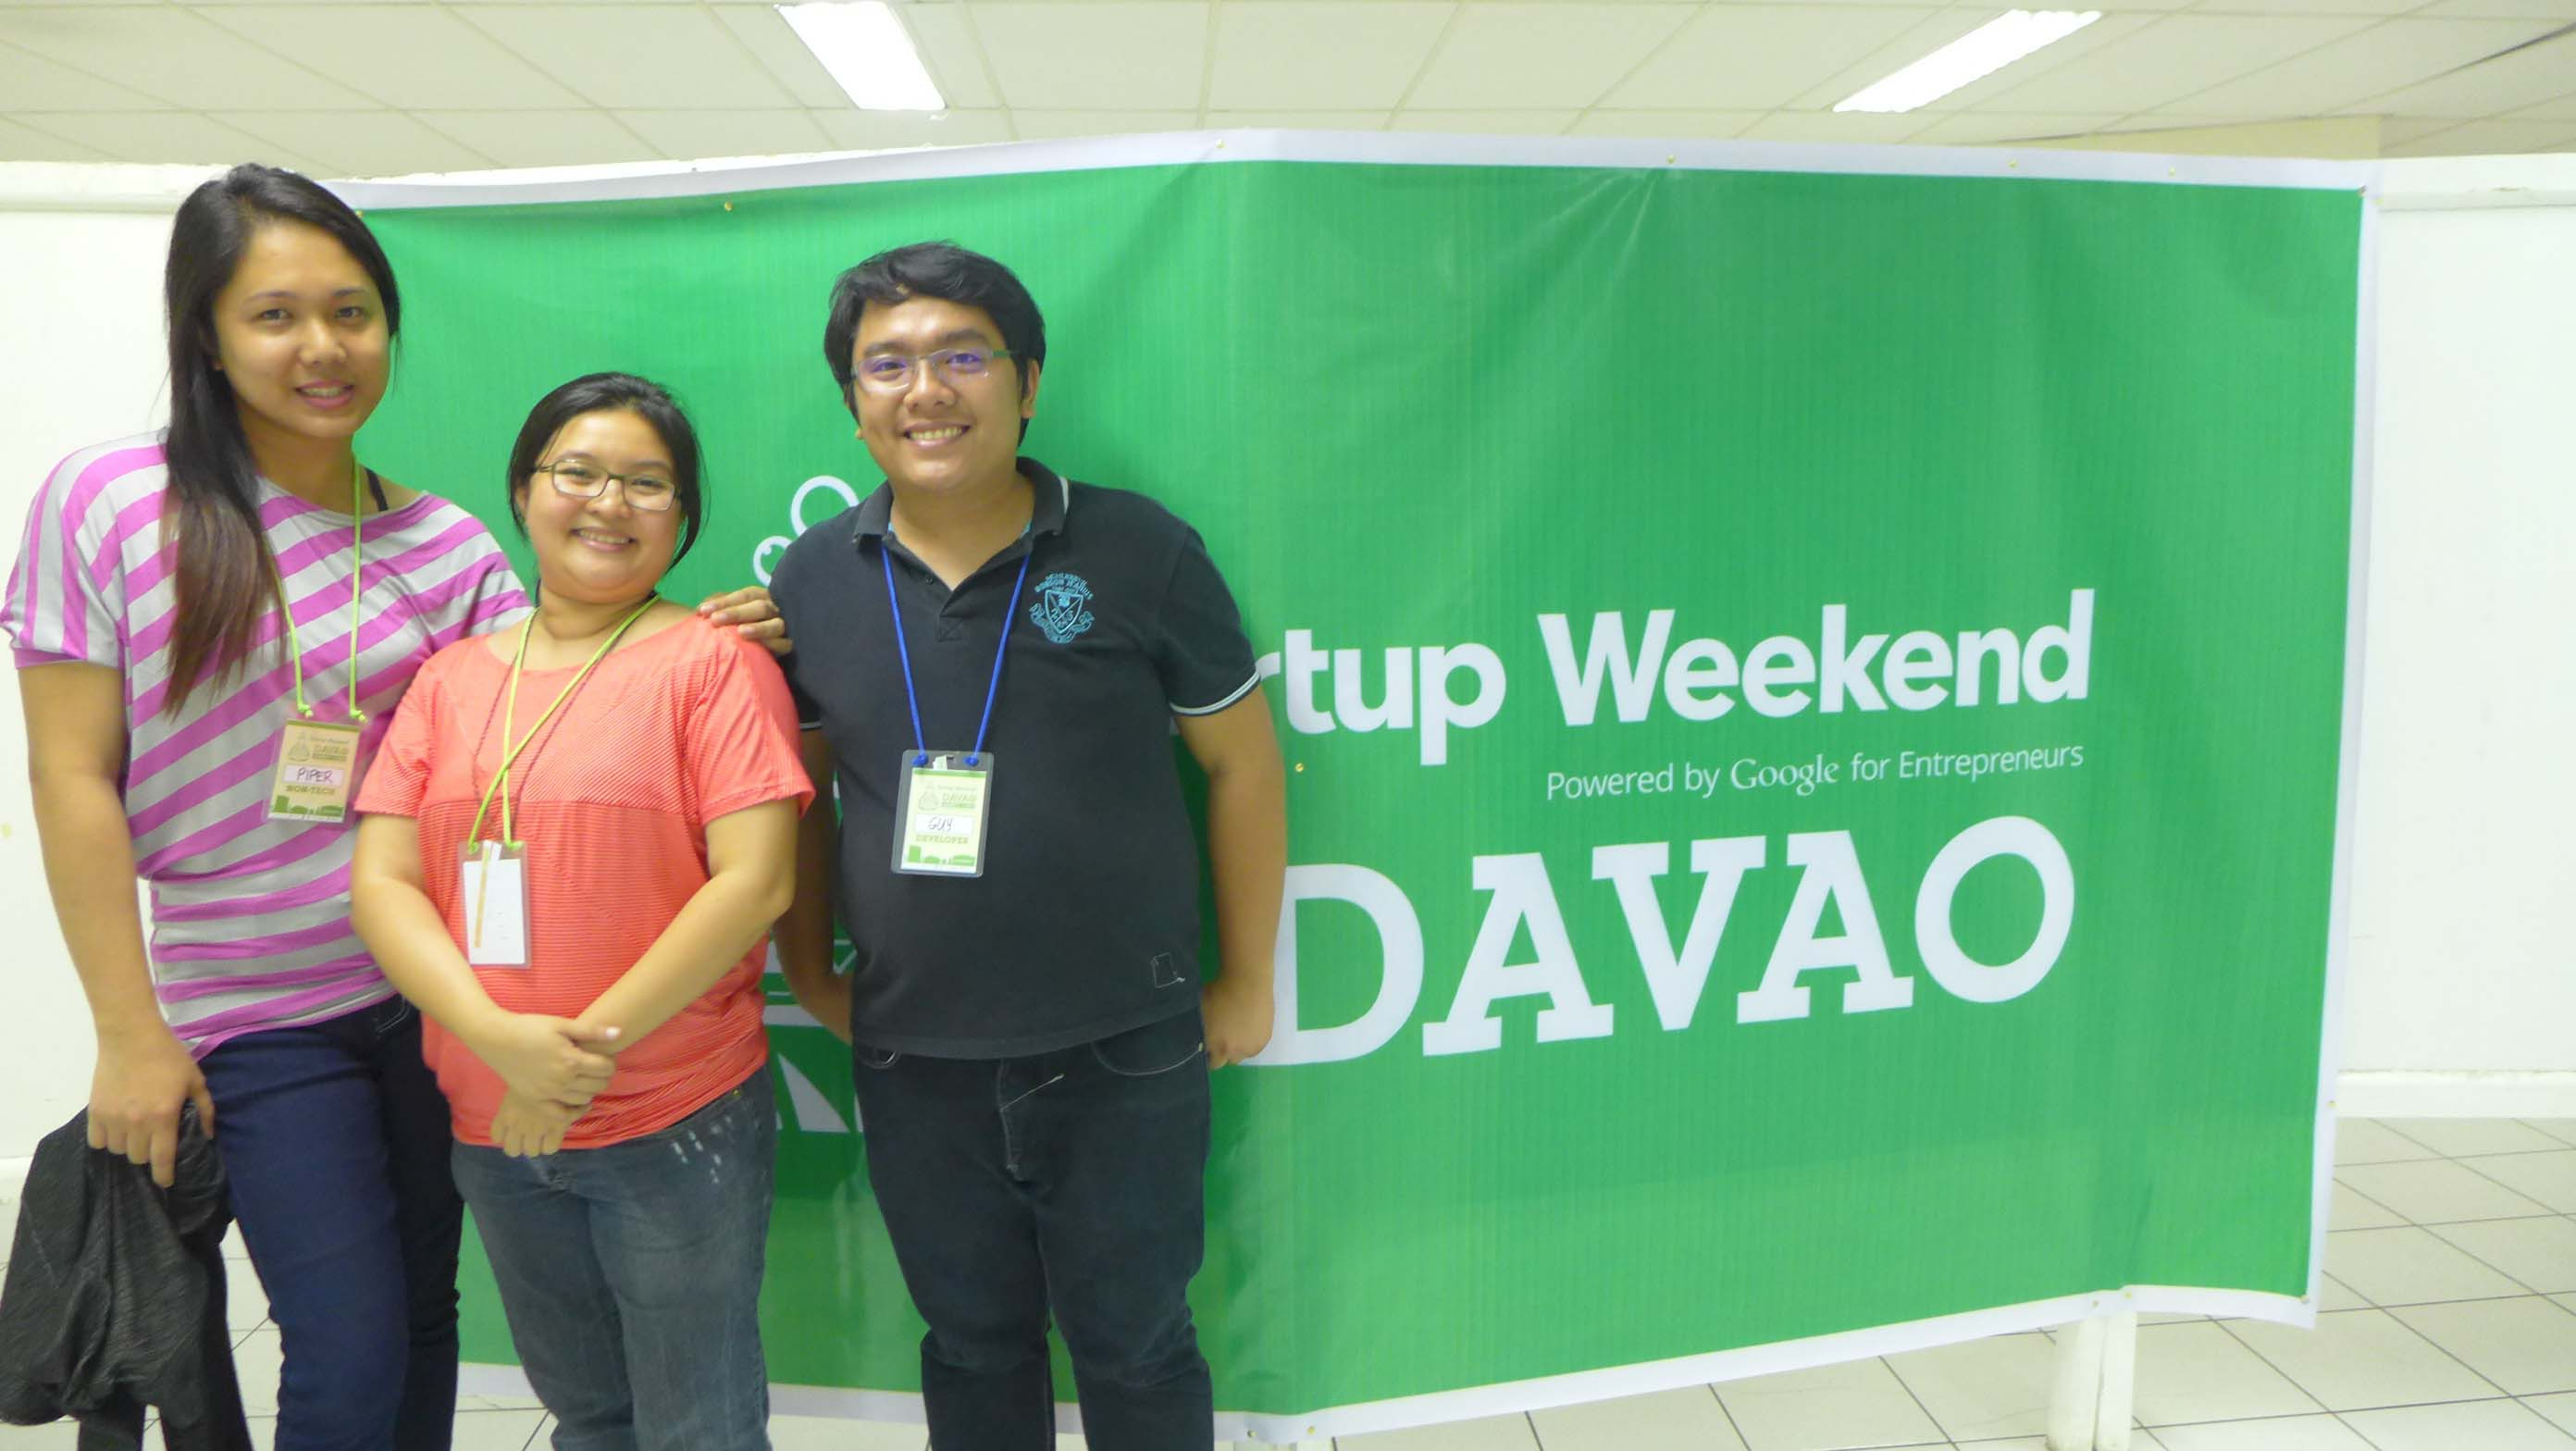 Onlinejobs.ph Jobseekers Participating in StartUp Weekend